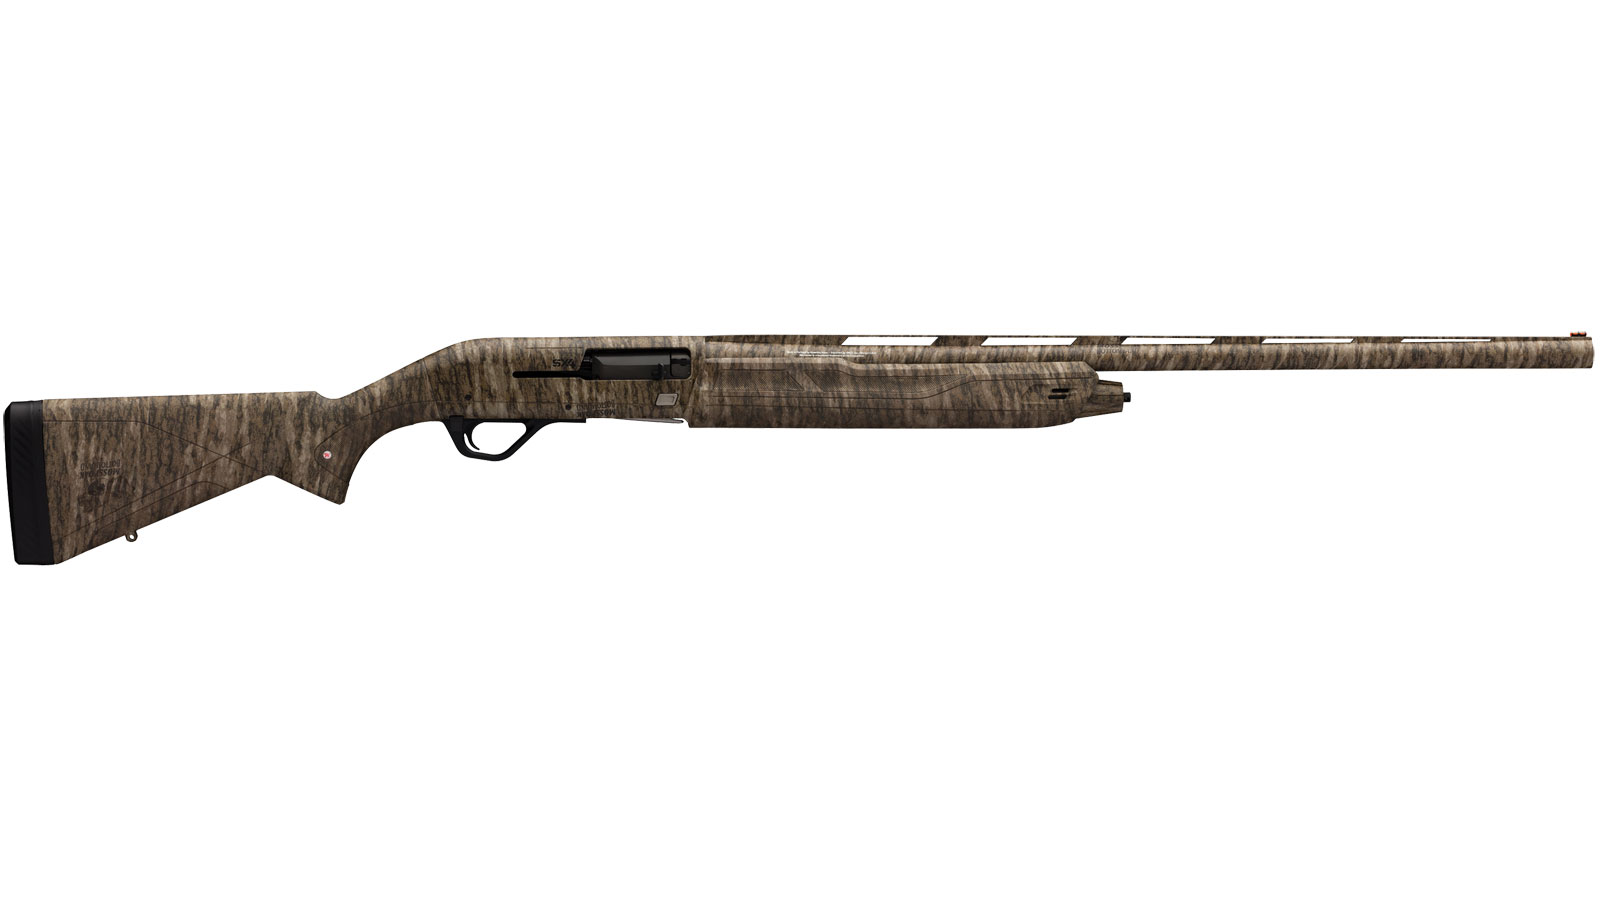 Winchester Guns 511212292 SX4 Semi-Automatic 12 Gauge 28 3.5 in.  Mossy Oak Bottomland Synthetic Stk  Mossy Oak Bottomland in.